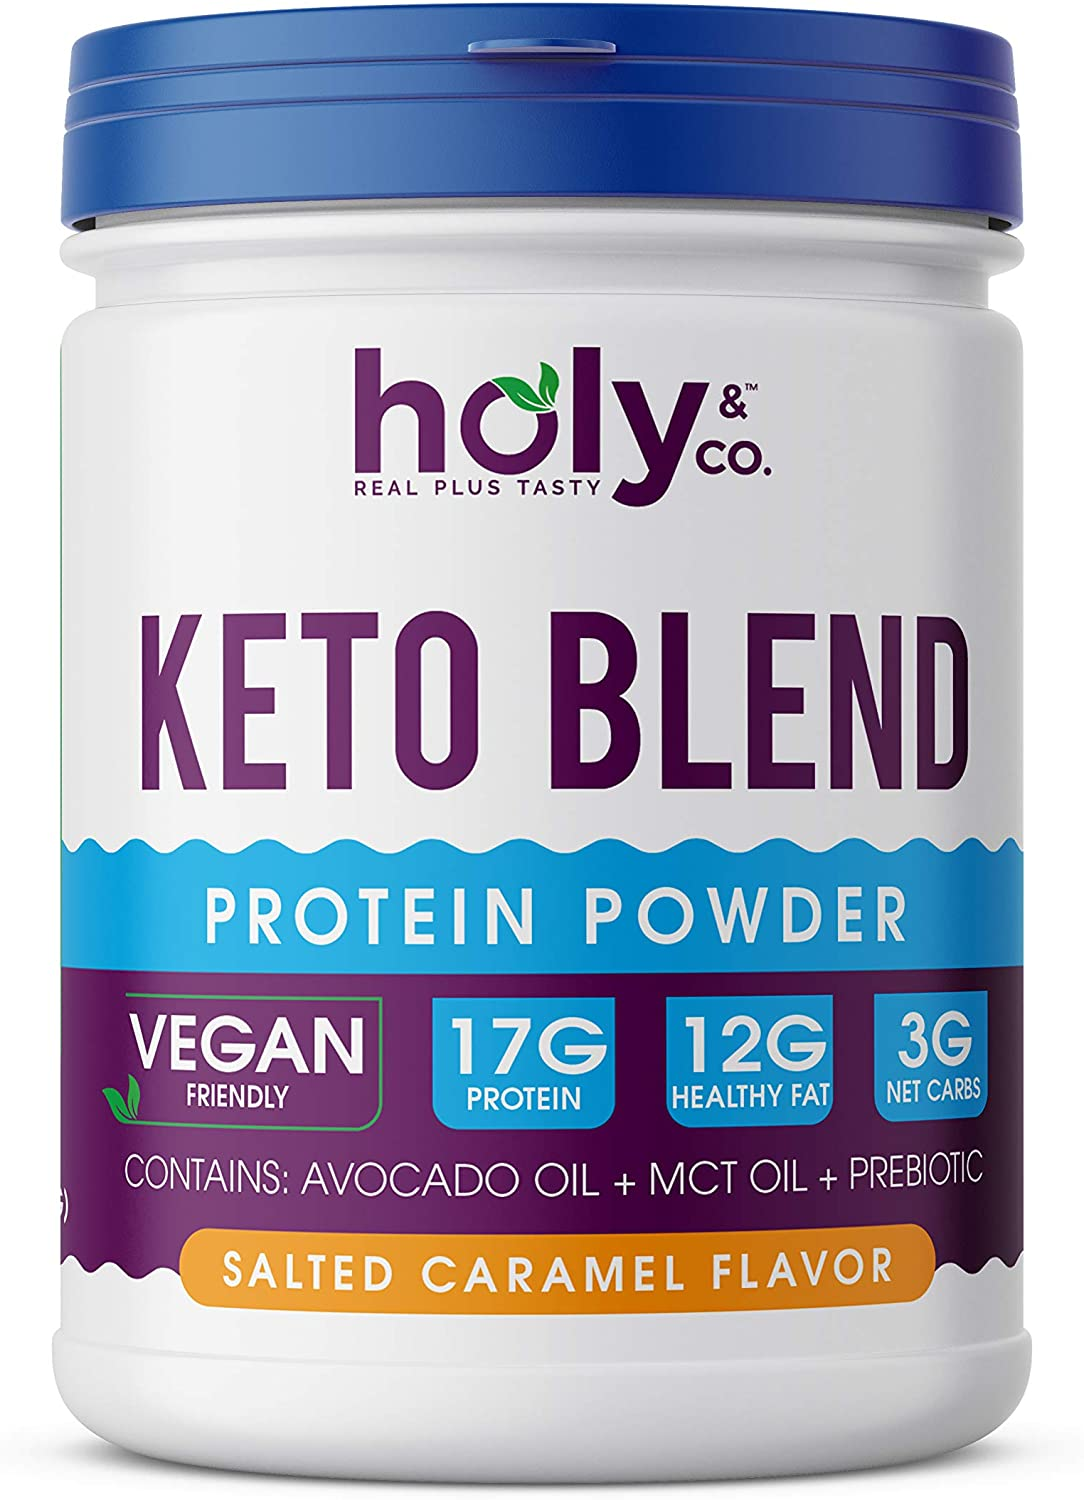 Holy and Co. Keto Protein Shake (Plant Based), Salted Caramel 16 oz (1lb / 453g) Powder. Healthy Fat Blend Featuring Avocado Oil and Coconut MCT Oil - Gluten Free, Non-Dairy, Non Soy, Non GMO